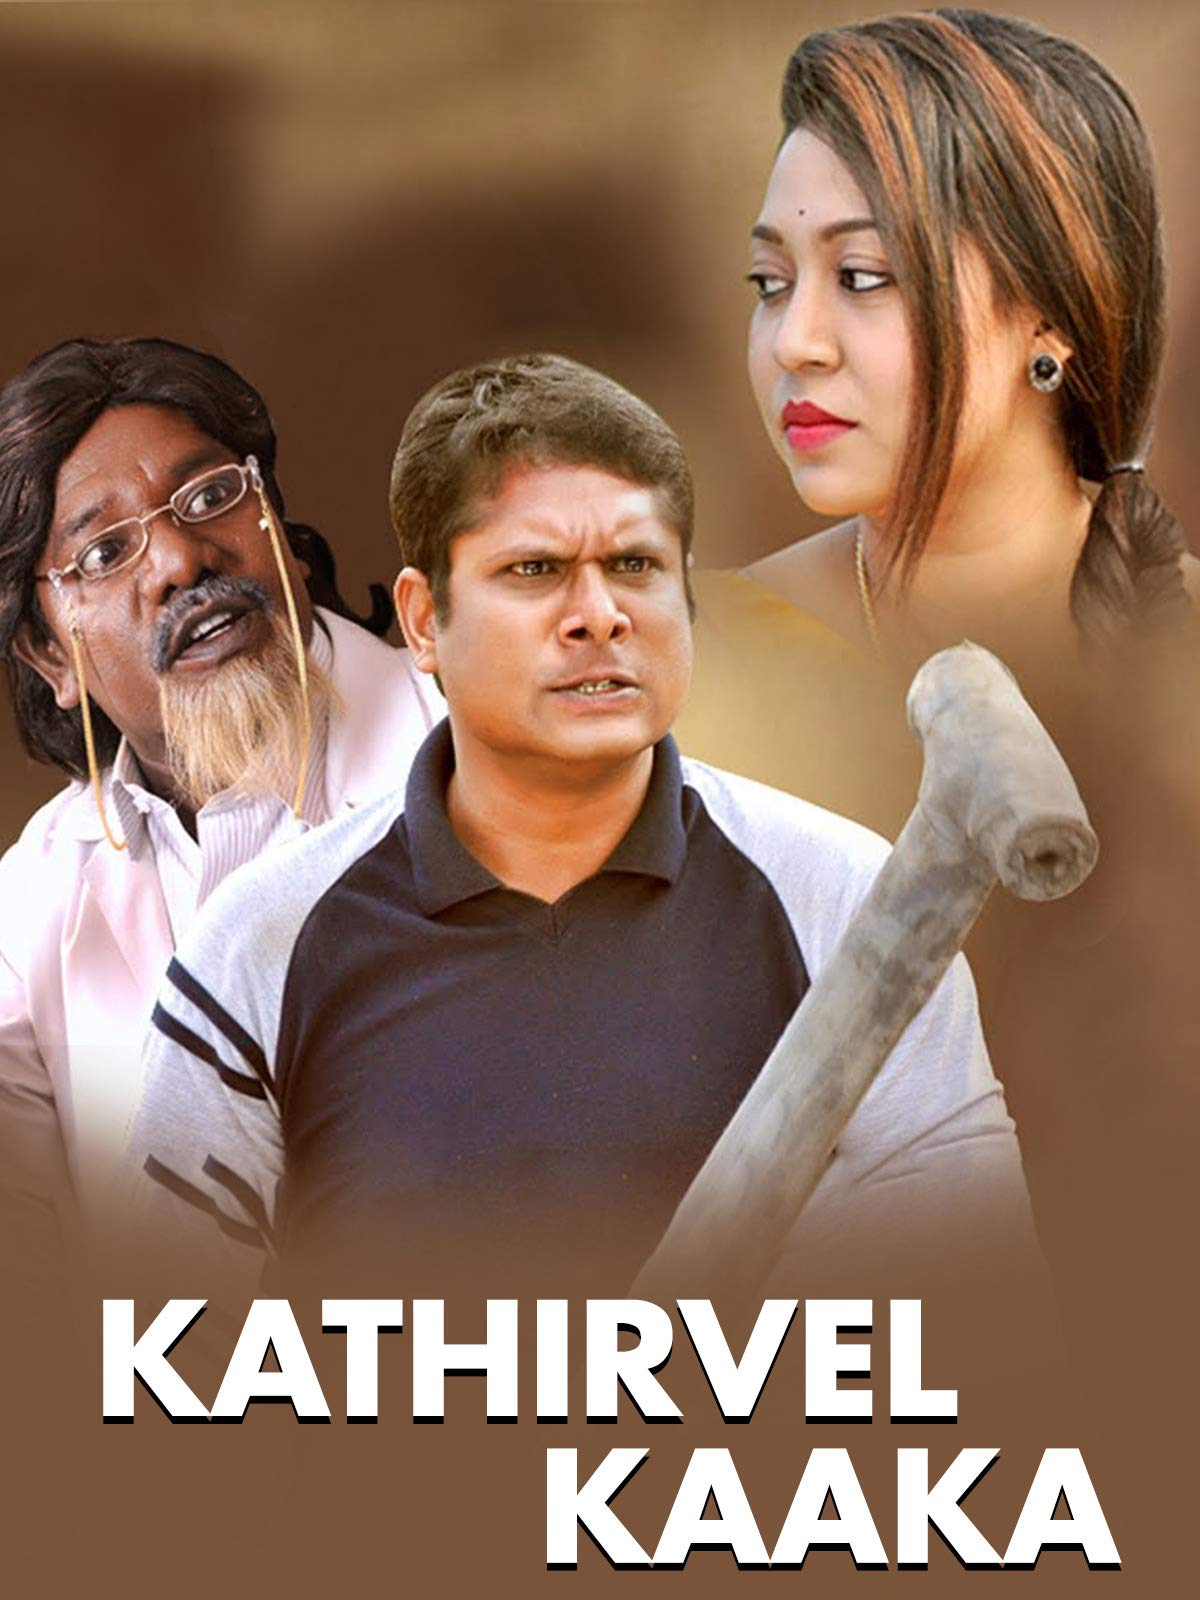 Veera The Power (Kathirvel Kakka) 2019 Hindi Dubbed 350MB HDRip 480p Free Download